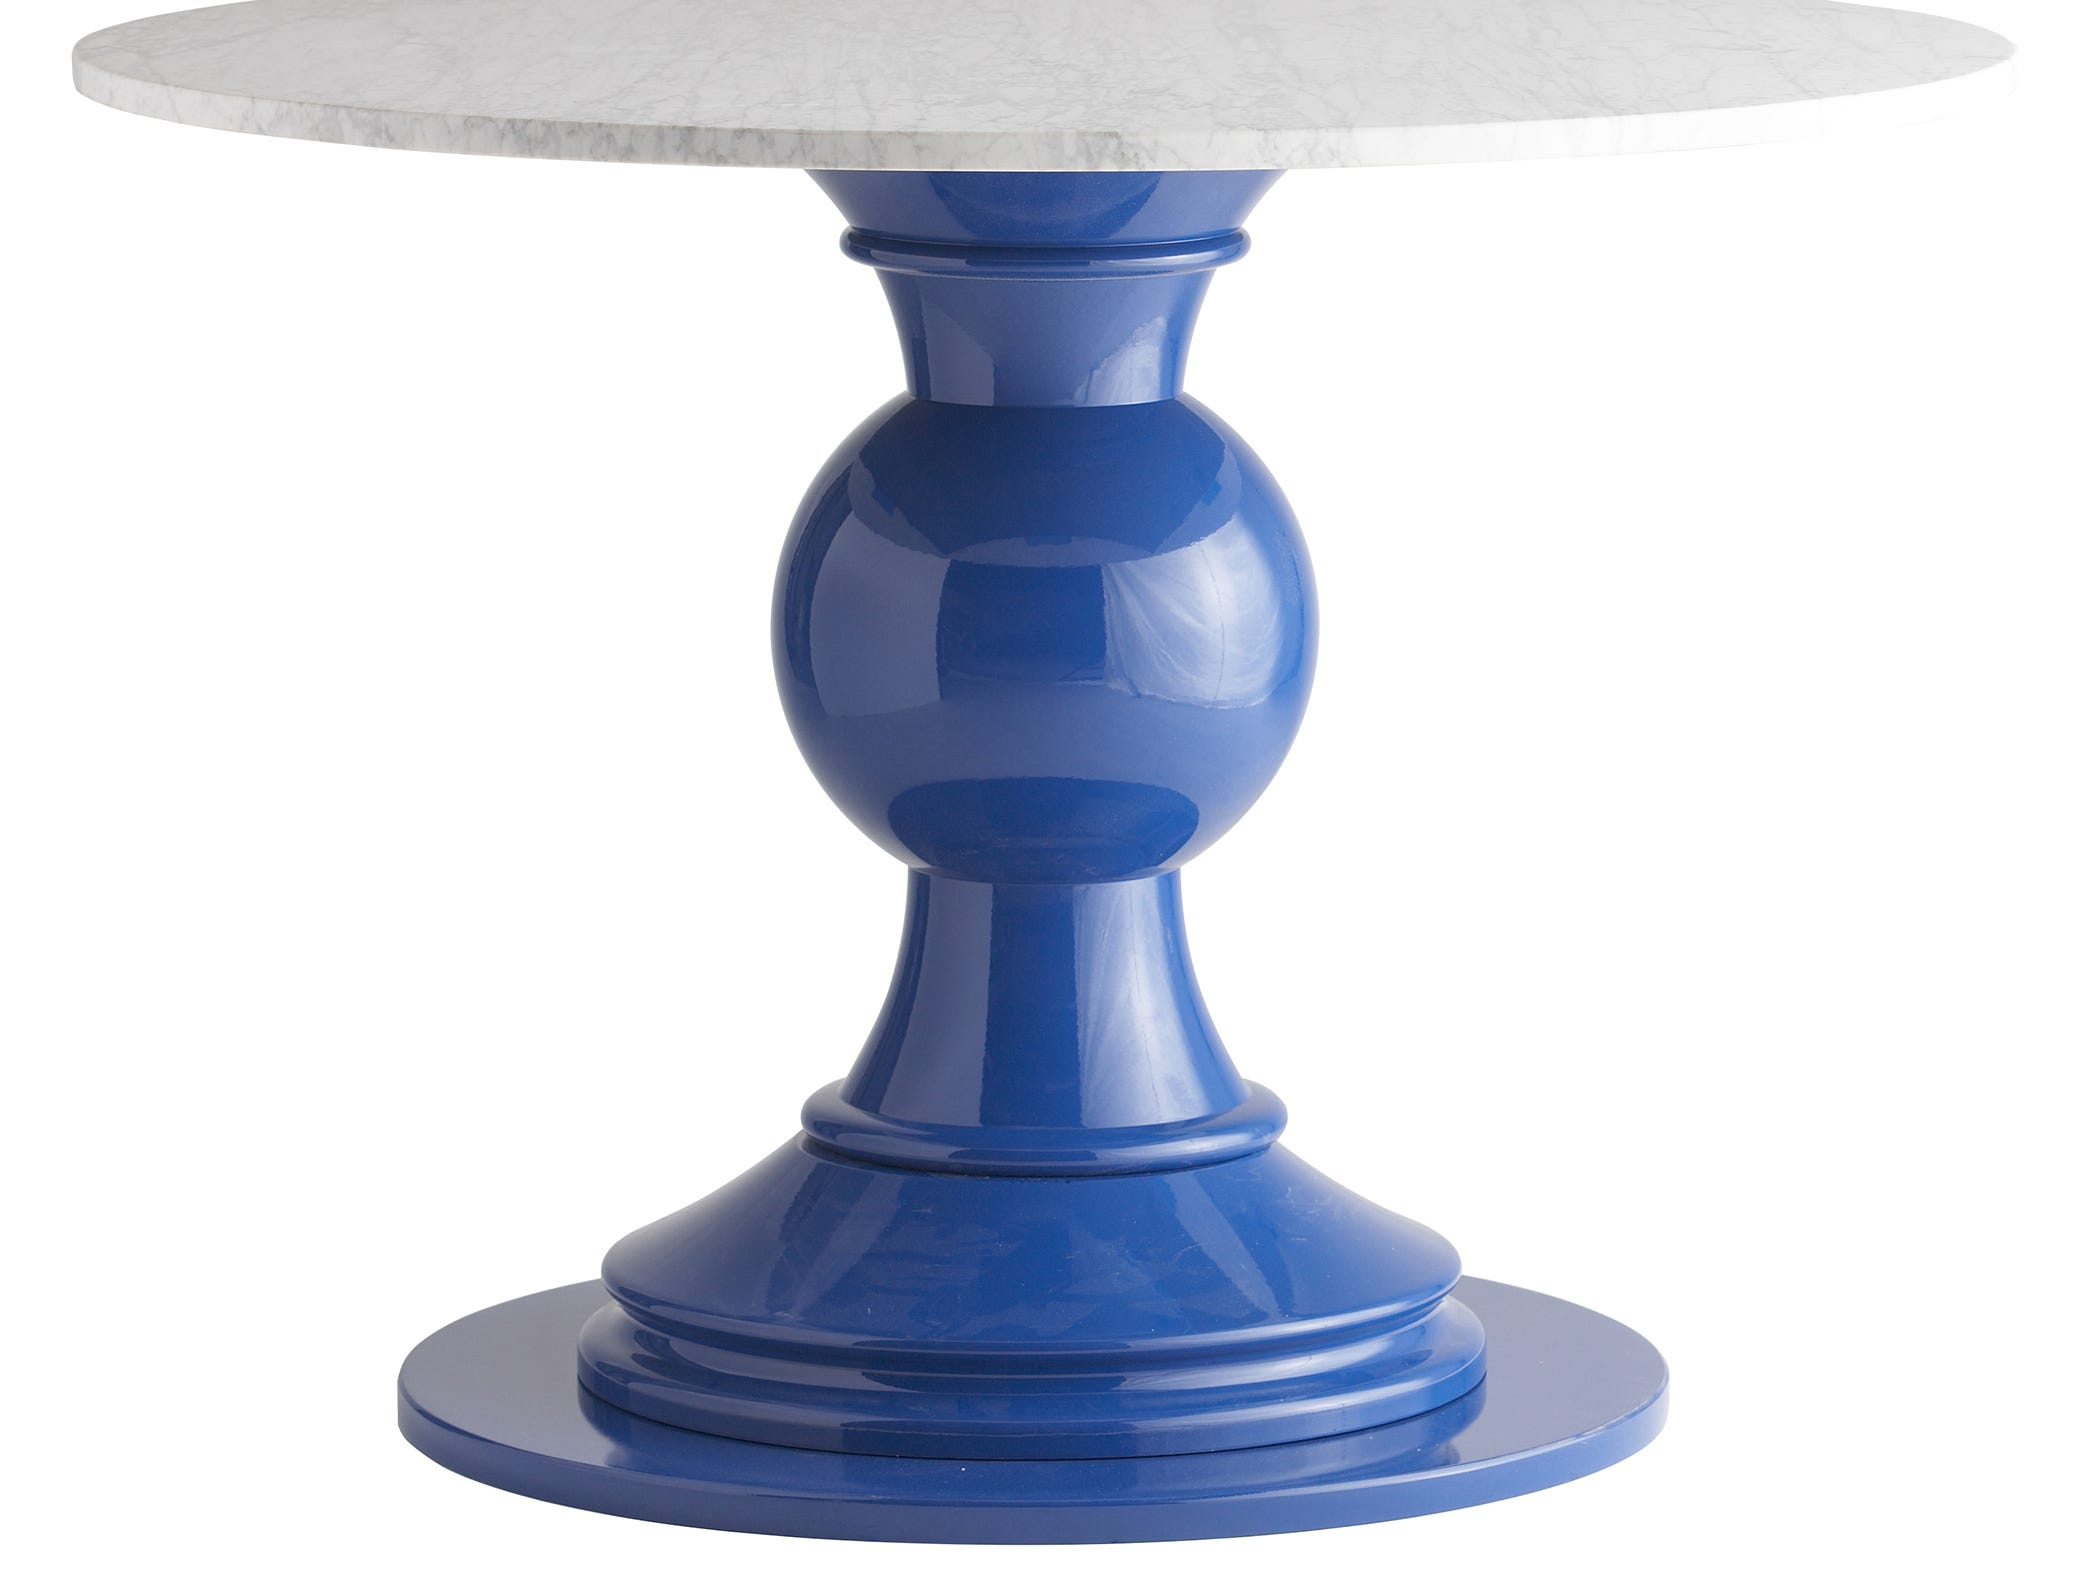 Stacy Kunstel wanted to design a statement table, so she played with proportions alongside partner Michael Partenio until she came up with this massive turned maple base, painted in a glossy custom Benjamin Moore color, Blueberry Hill. She topped the Chunky Captain Compass Table with a 48-inch white-honed Carrara marble.